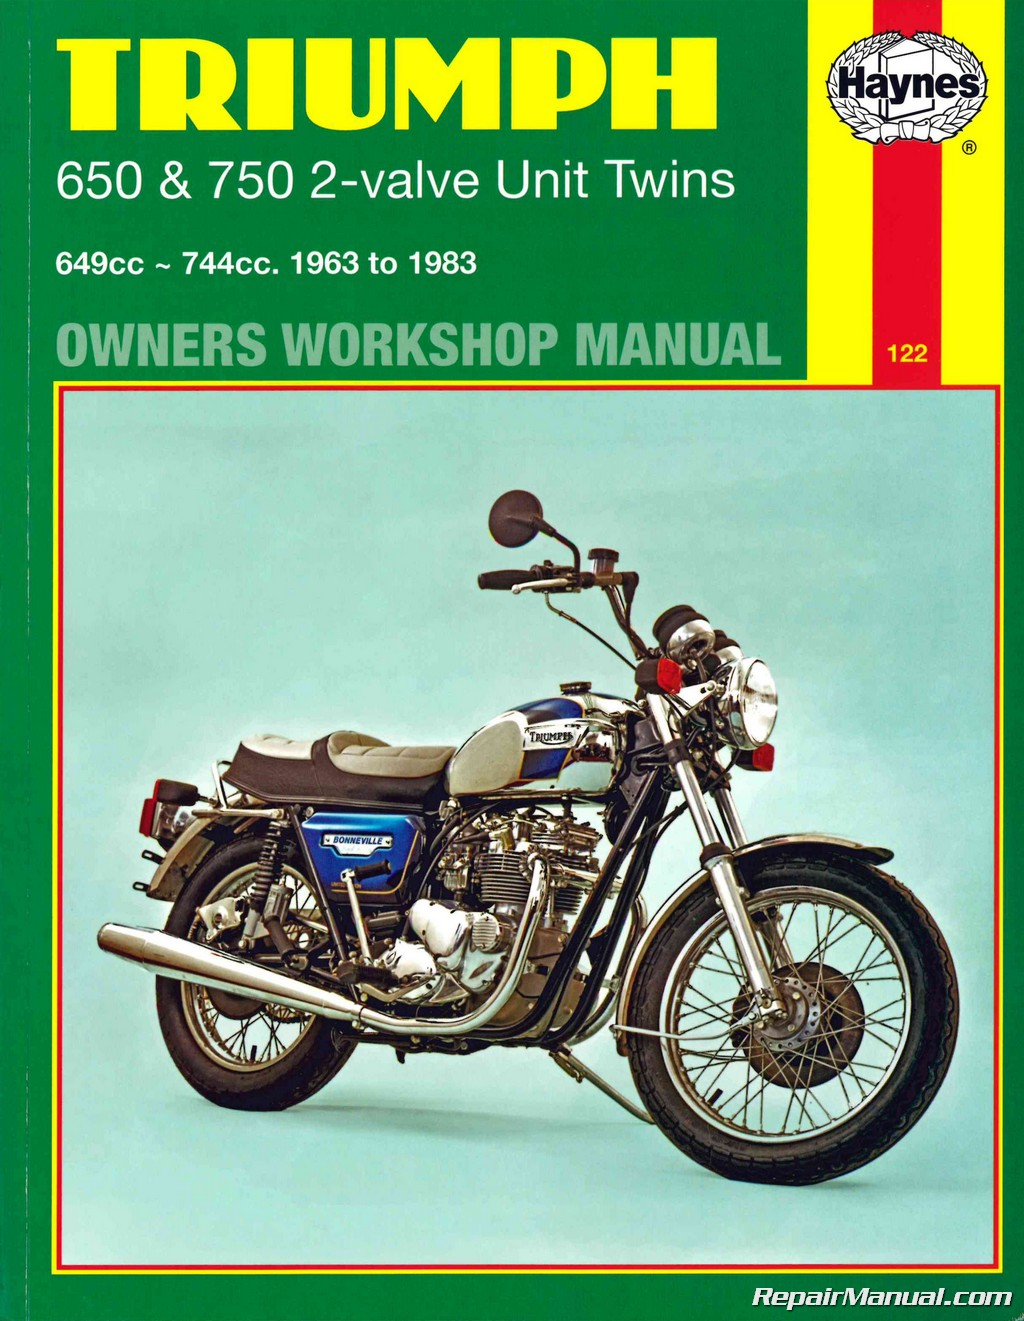 Wiring Diagram 72 Triumph Page 4 And Schematics Gt6 Mk3 House Symbols Source Bonneville Trophy Tiger 1963 1983 Motorcycle Owners Workshop Rh Repairmanual Com 1972